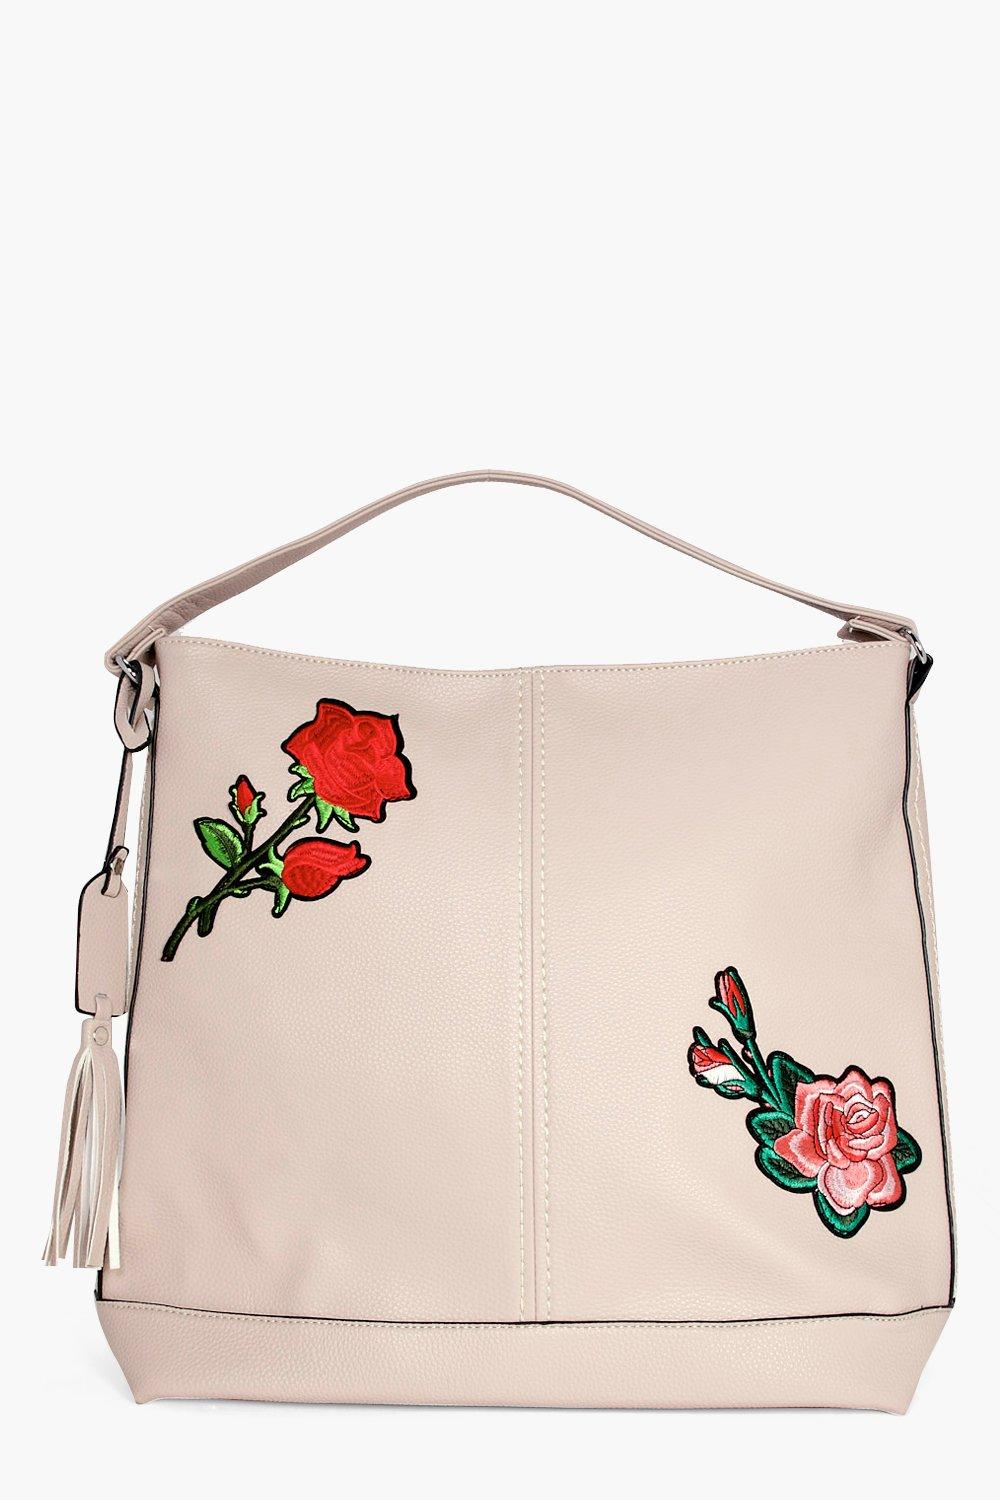 Embroidered Hobo Shoulder Bag - taupe - Alyssa Emb